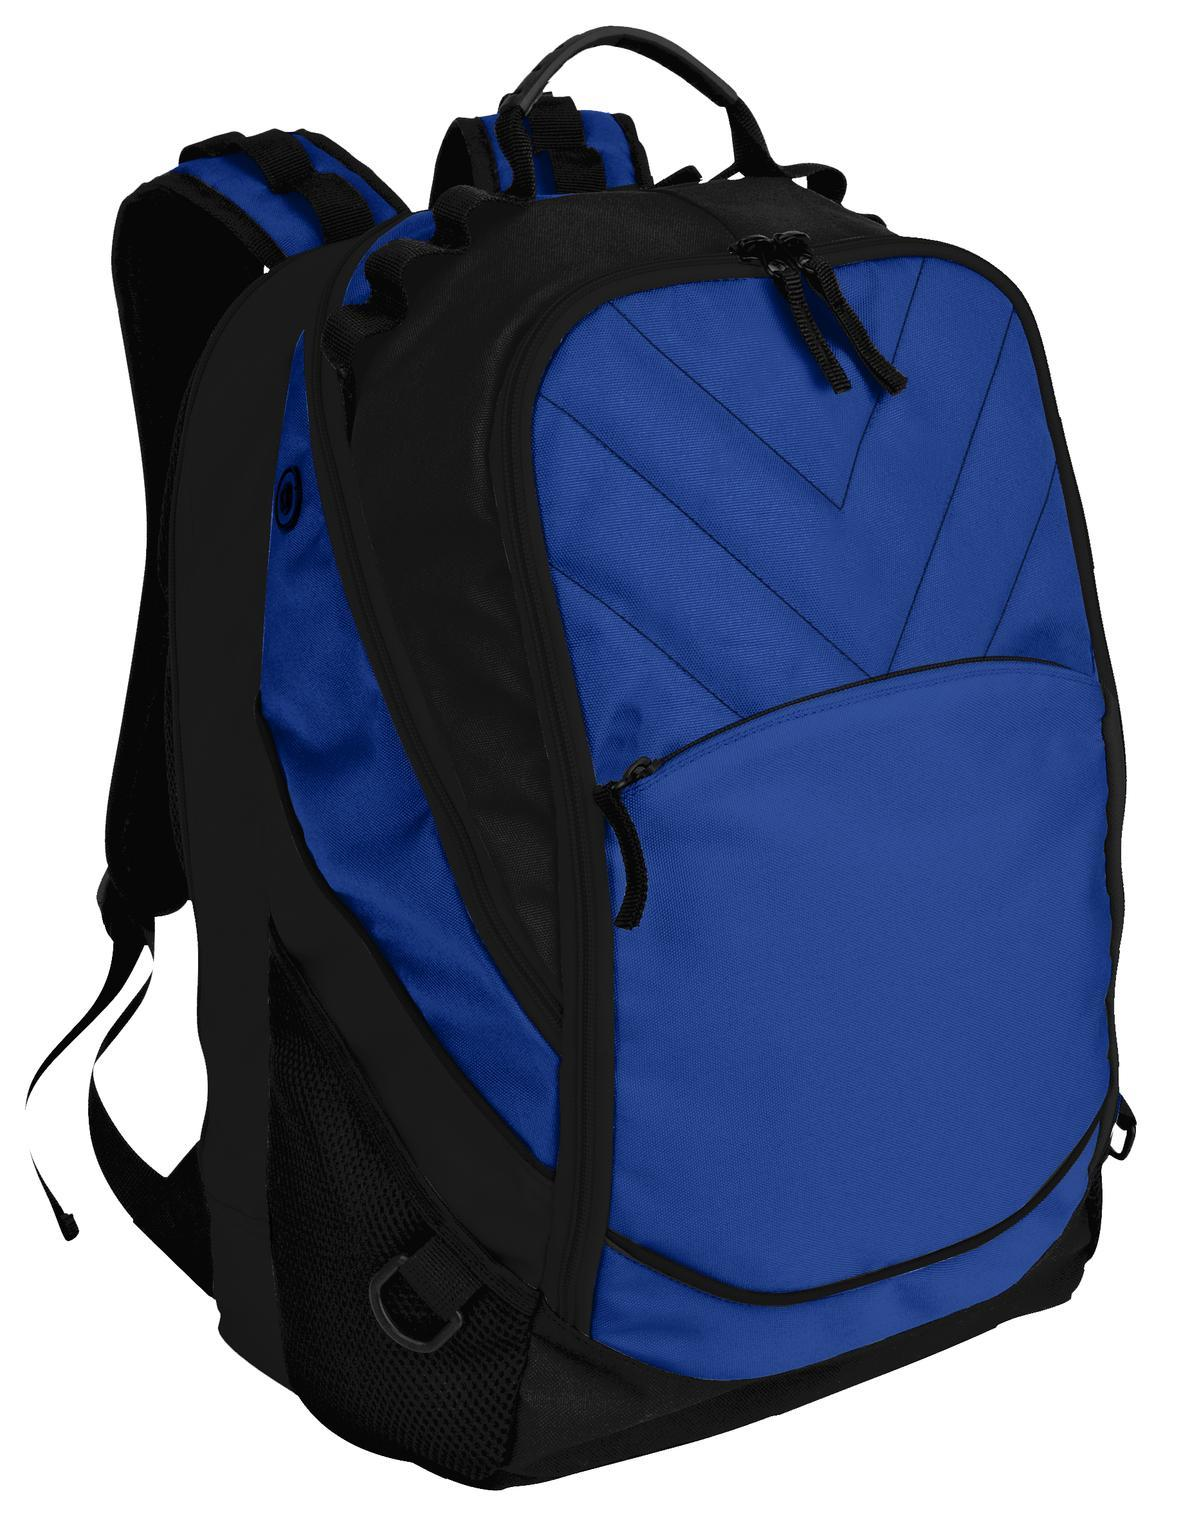 Shock Blue/ Black - Port Authority BG100